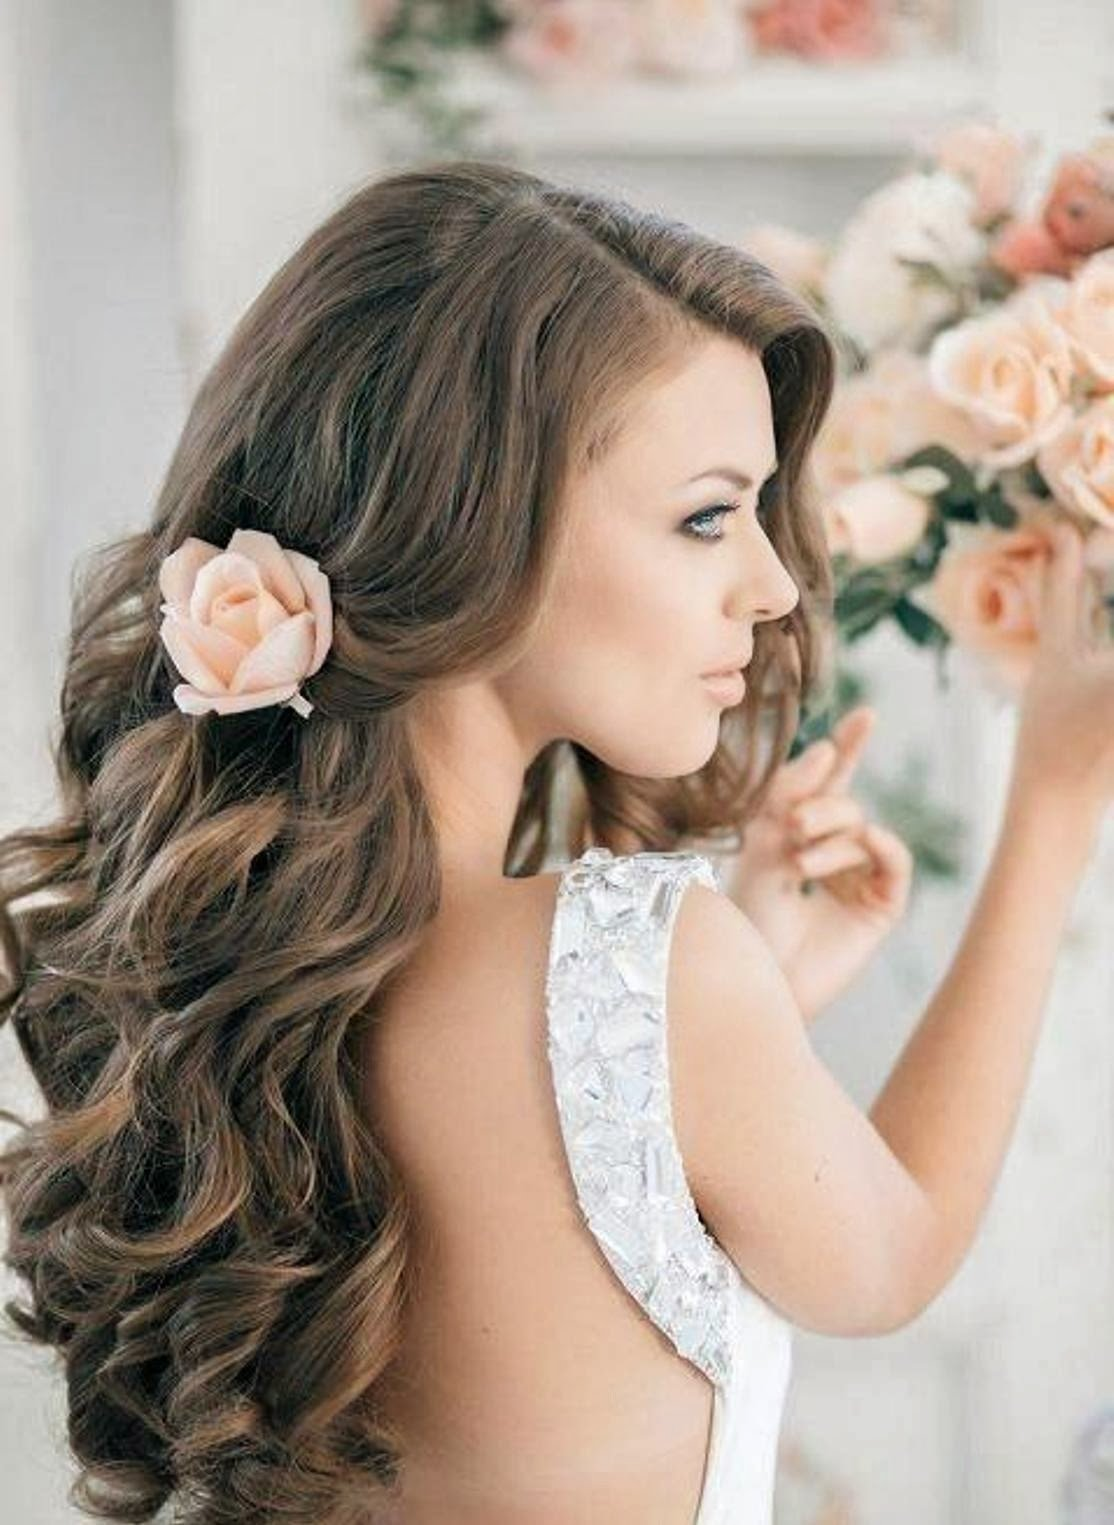 The Best Best Hairstyles For Long Hair Wedding Hair Fashion Style Color Styles Cuts Pictures